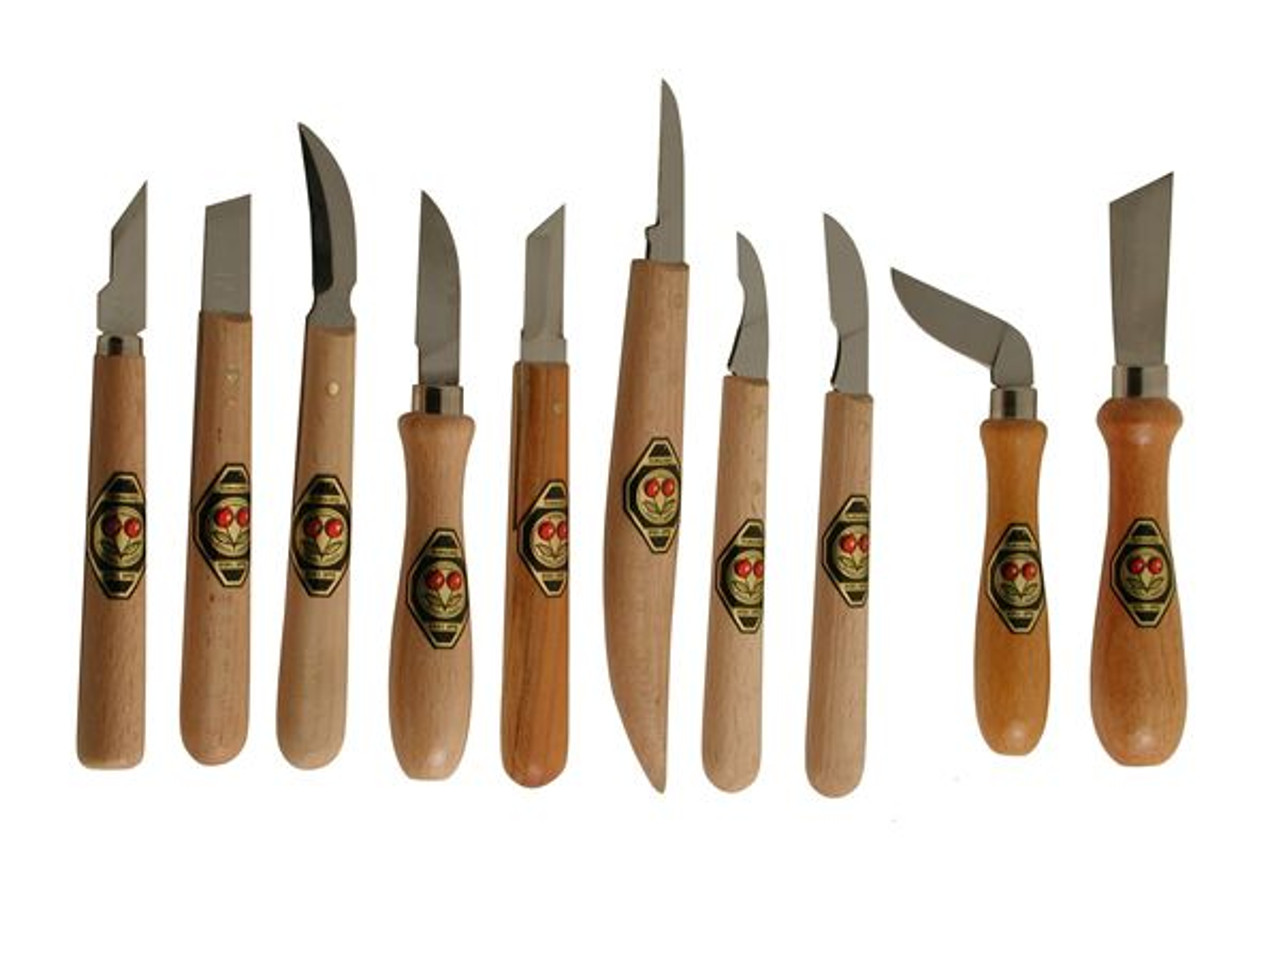 Two Cherries Set of 10 Chip Carving Knives